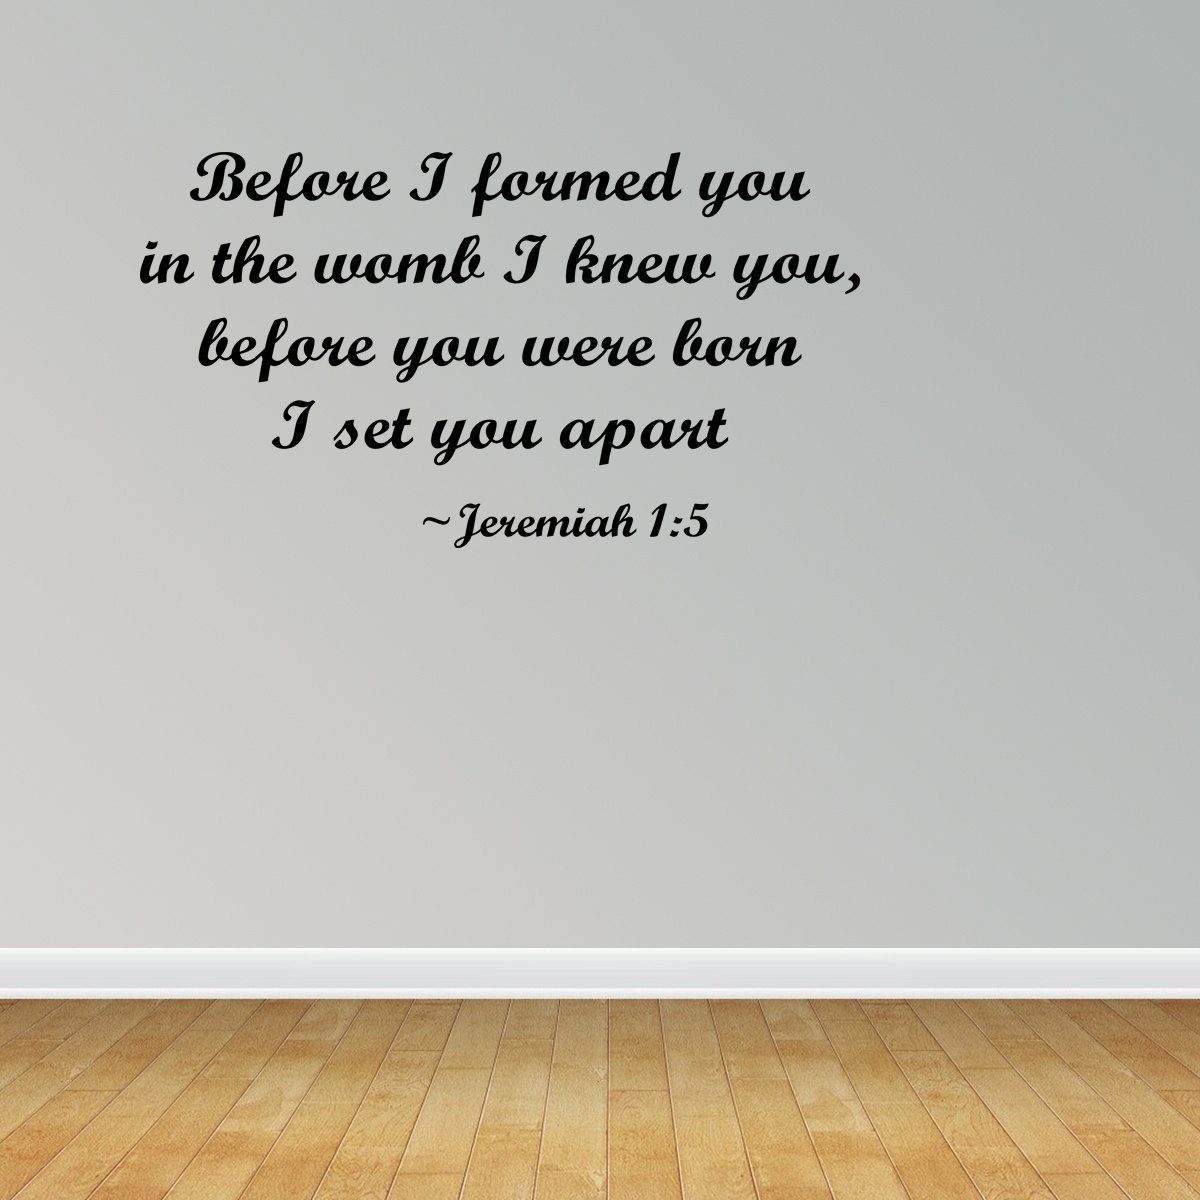 Before I Formed You In The Womb I Knew You Jeremiah 1:5 Vinyl Wall Decal JR522